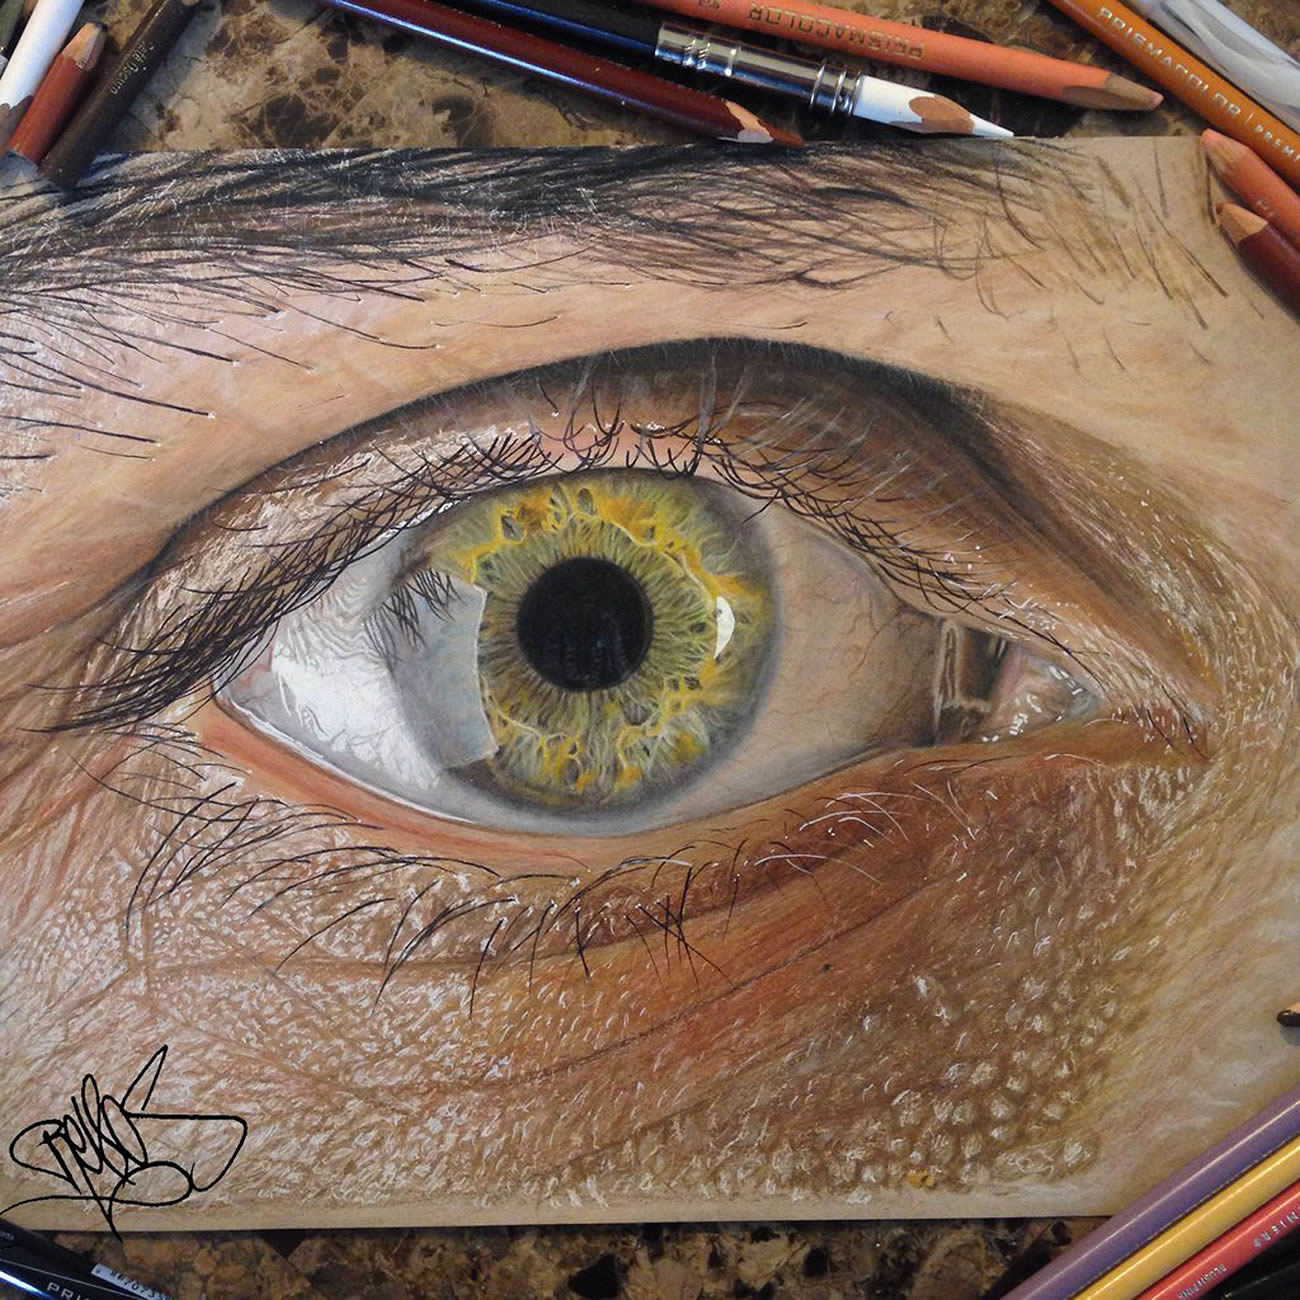 Photorealistic Eye Drawings by Redosking